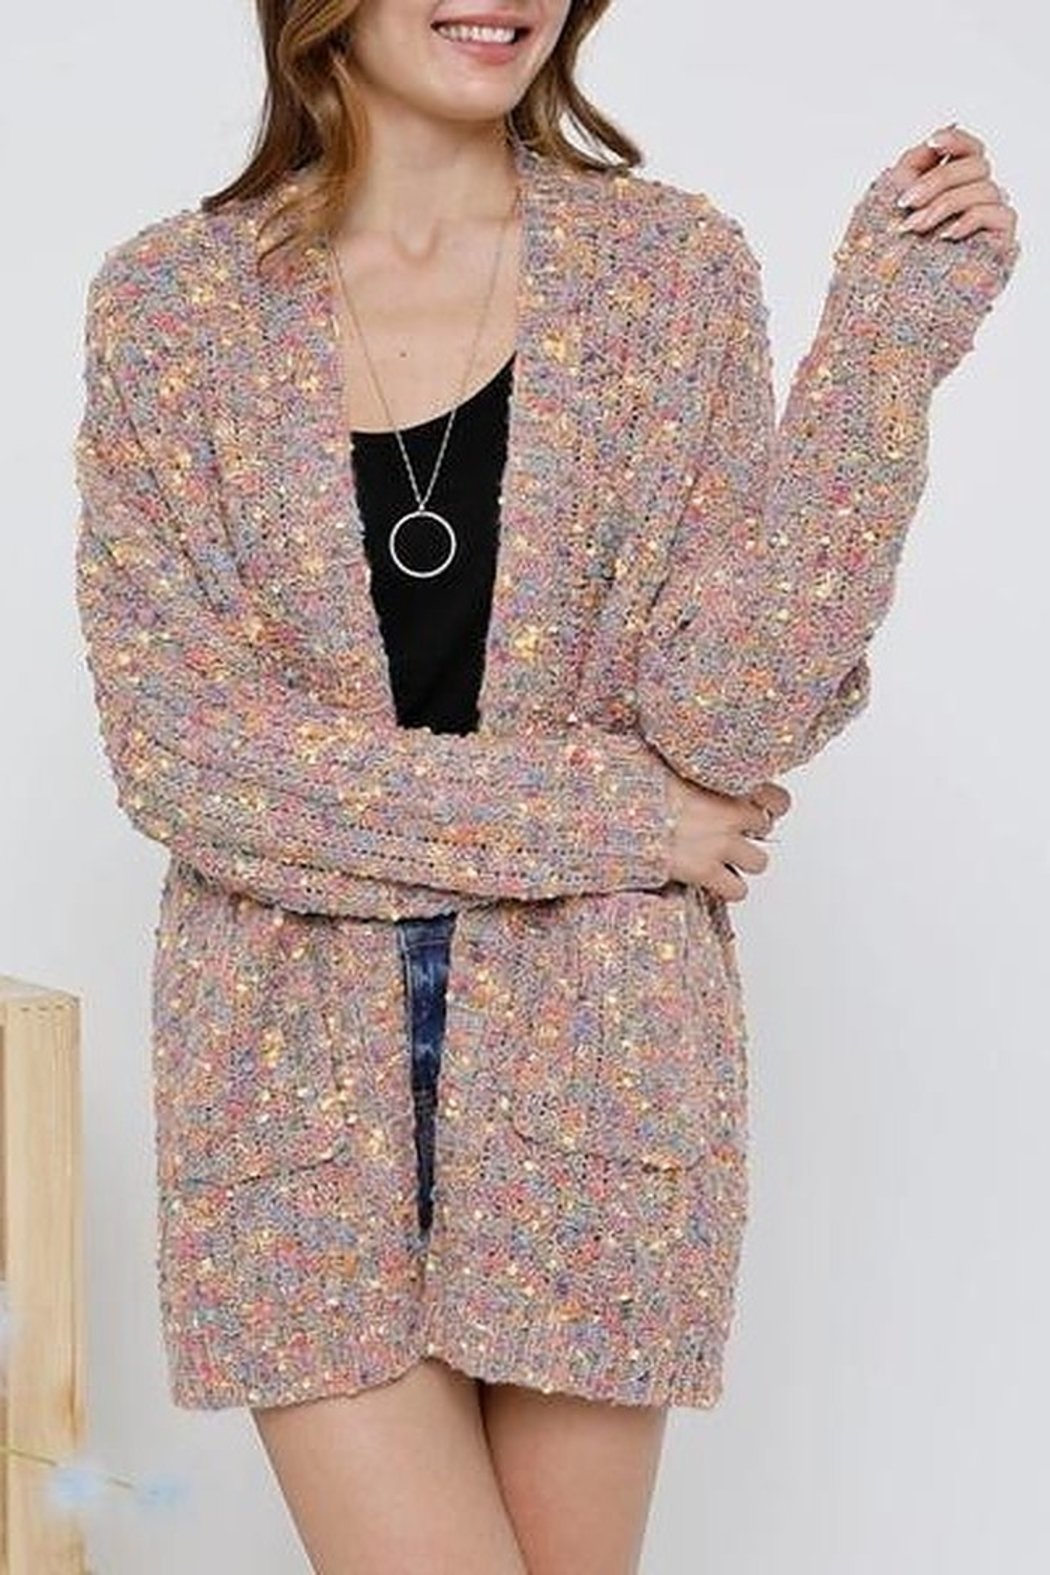 Adora Colorful Cutie Cardigan - Front Cropped Image